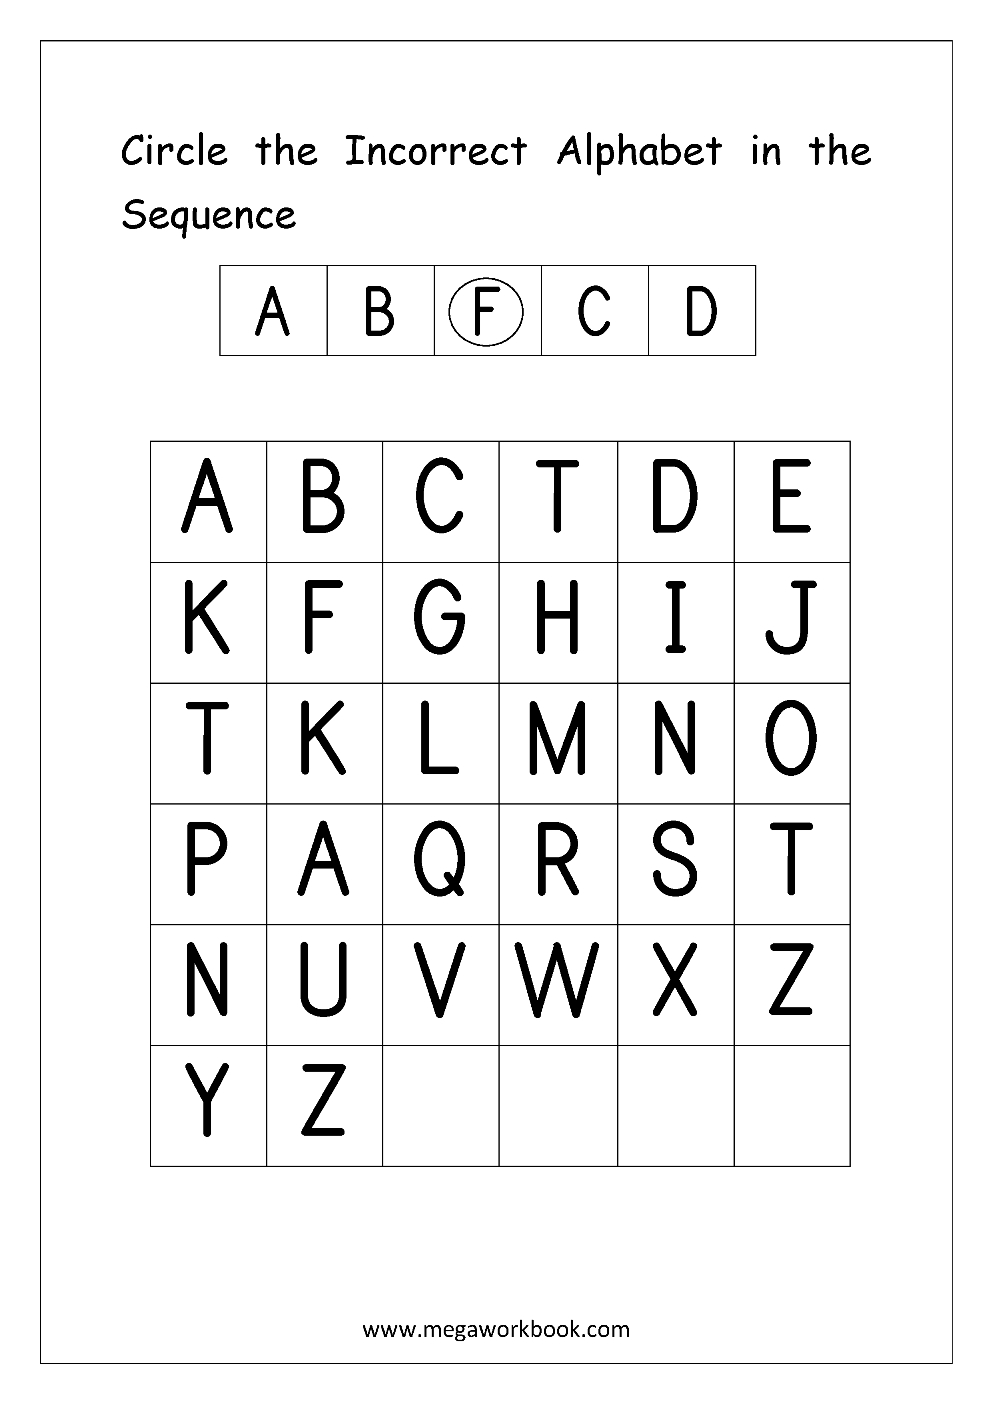 English Worksheets - Alphabetical Sequence | Alphabet with Alphabet Order Worksheets Printable